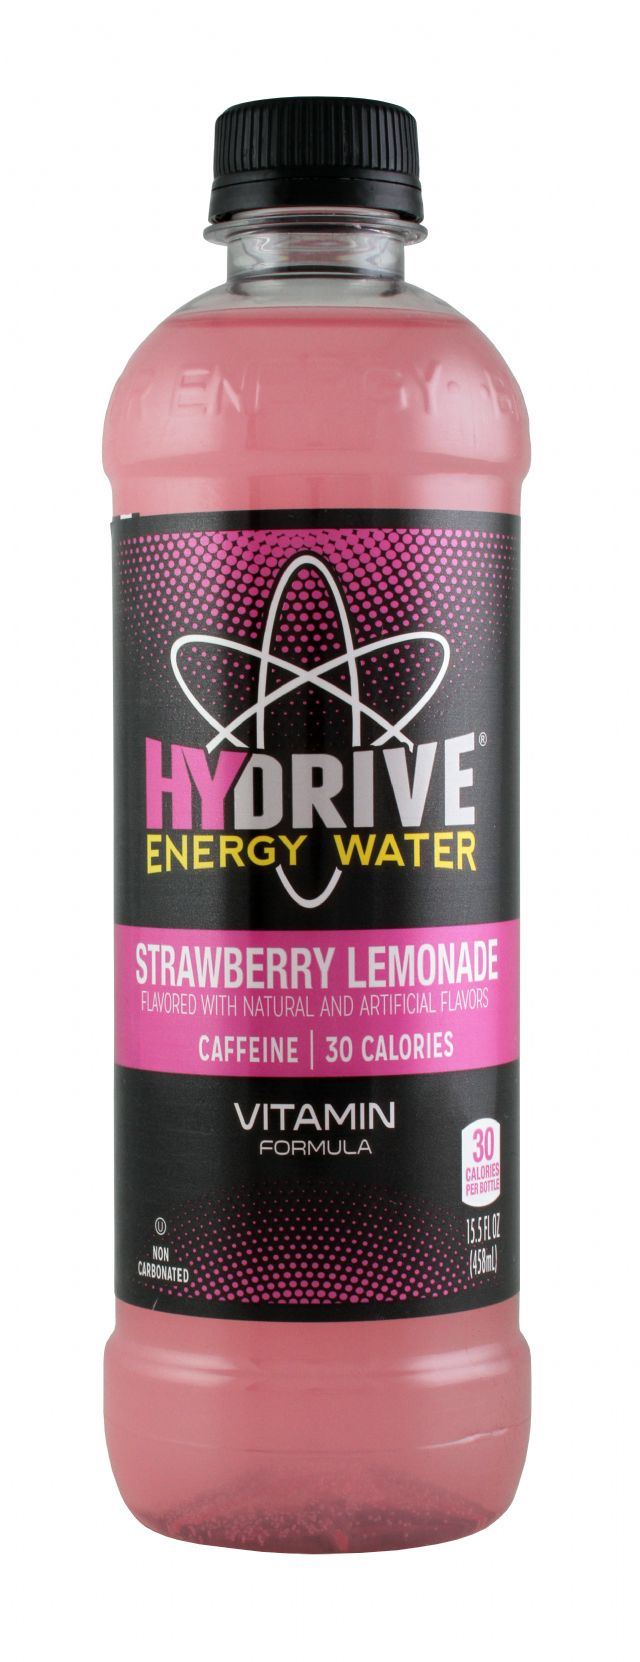 HYDRIVE Energy Drink: Hydrive StawLem Front